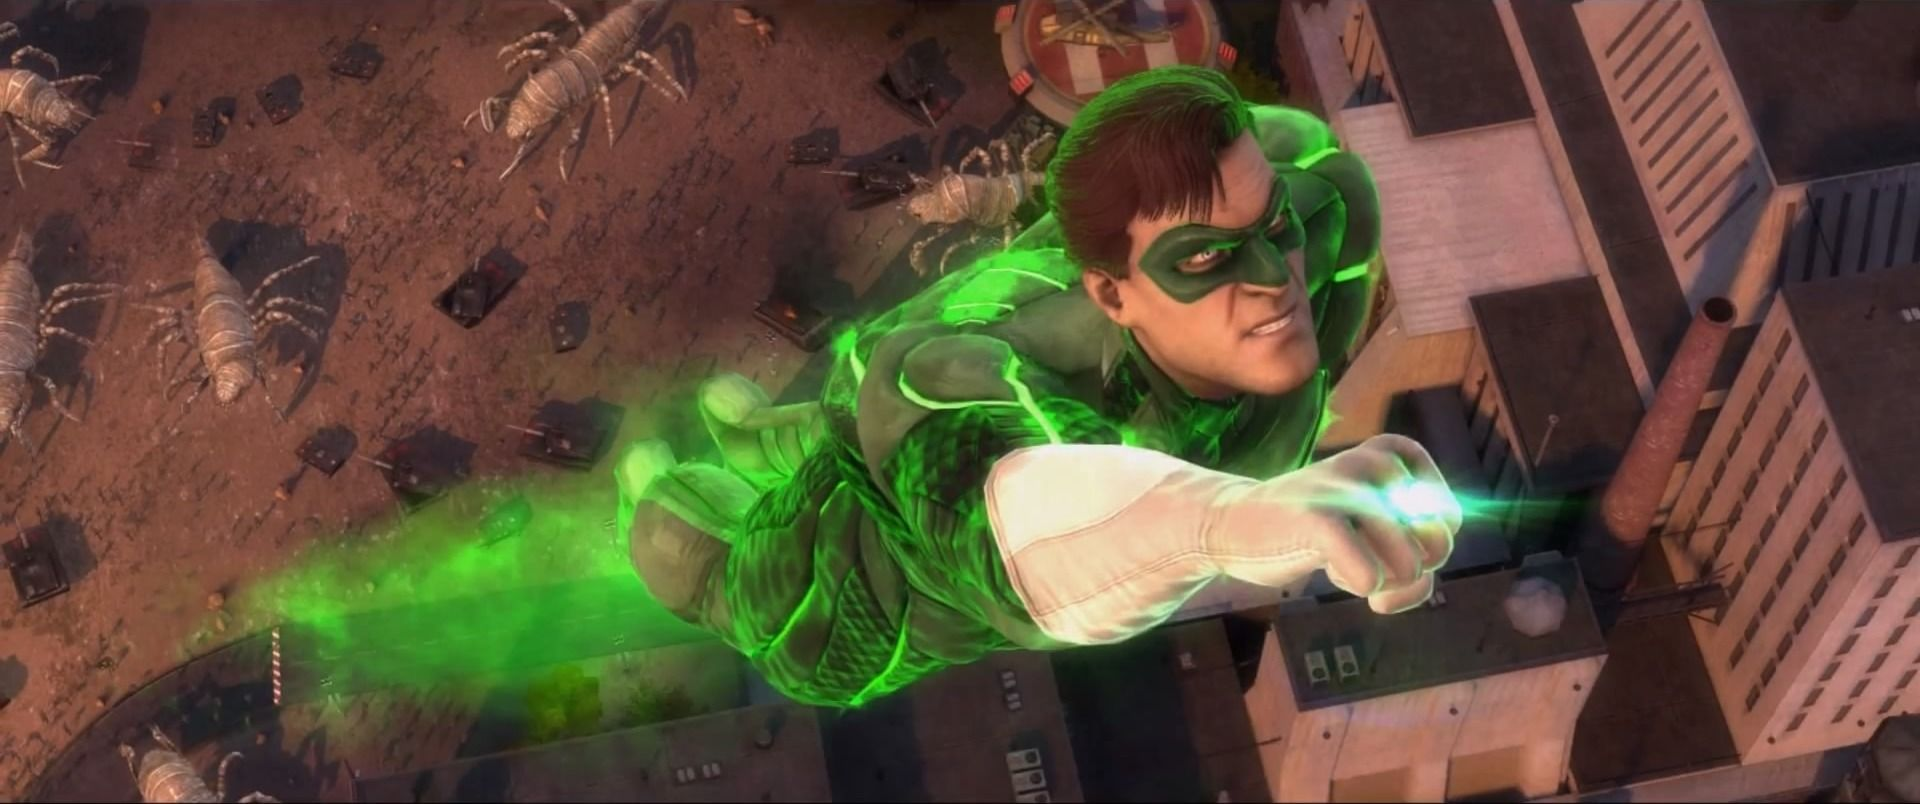 Injustice Gods Among Us Characters Green Lantern Chapter 8 Batman Fighting Games Game Based Injustice